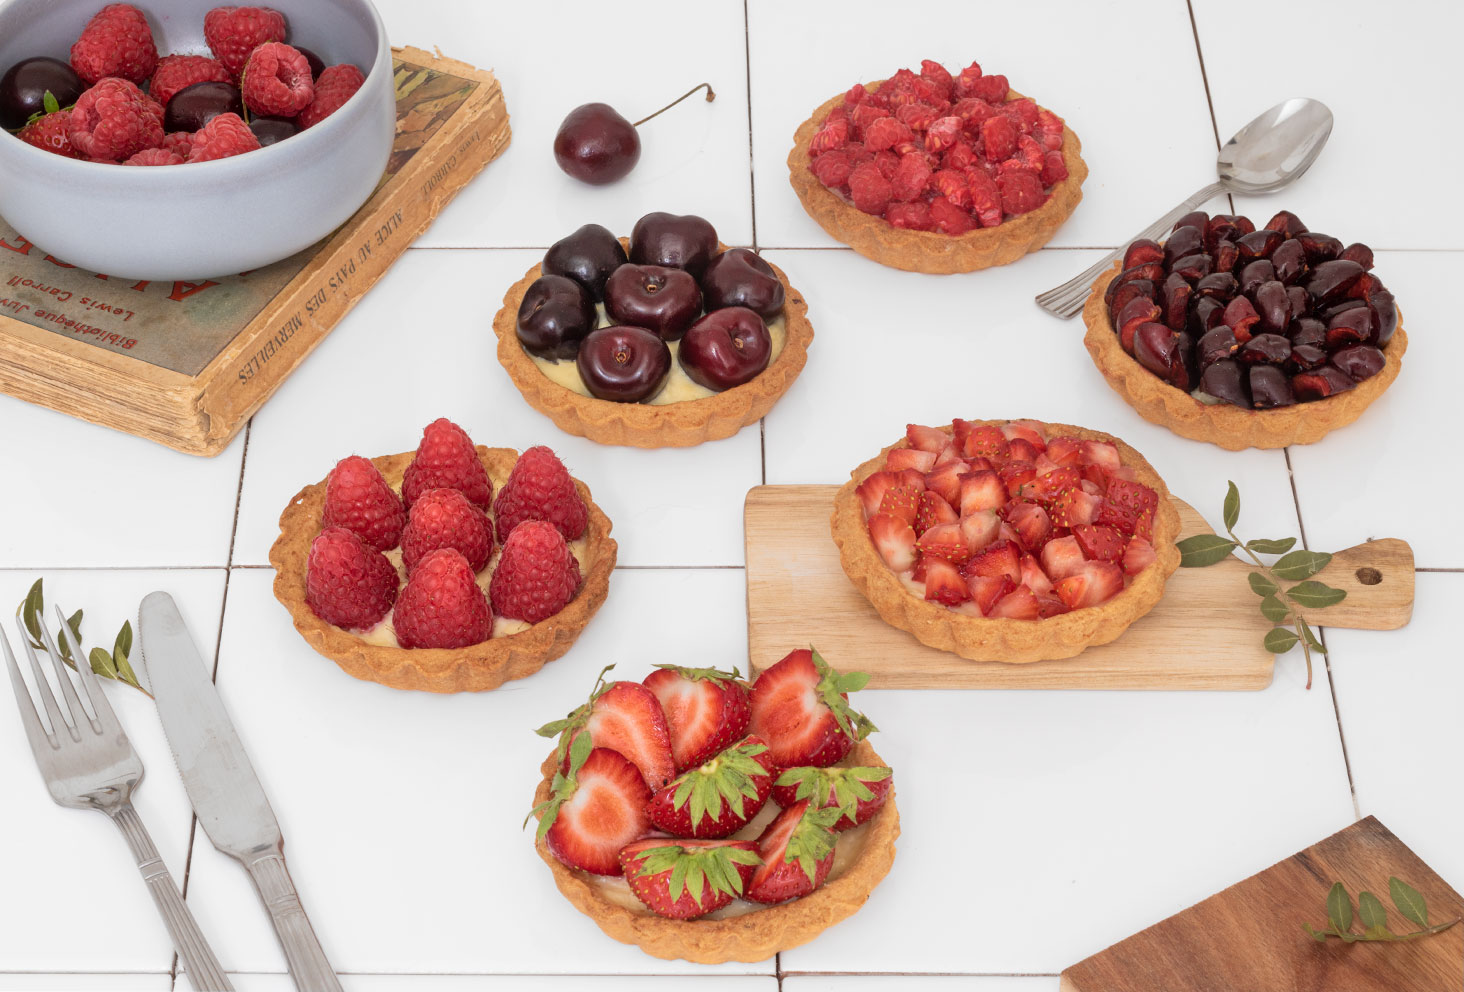 Ensemble de tartelettes aux fruits rouges